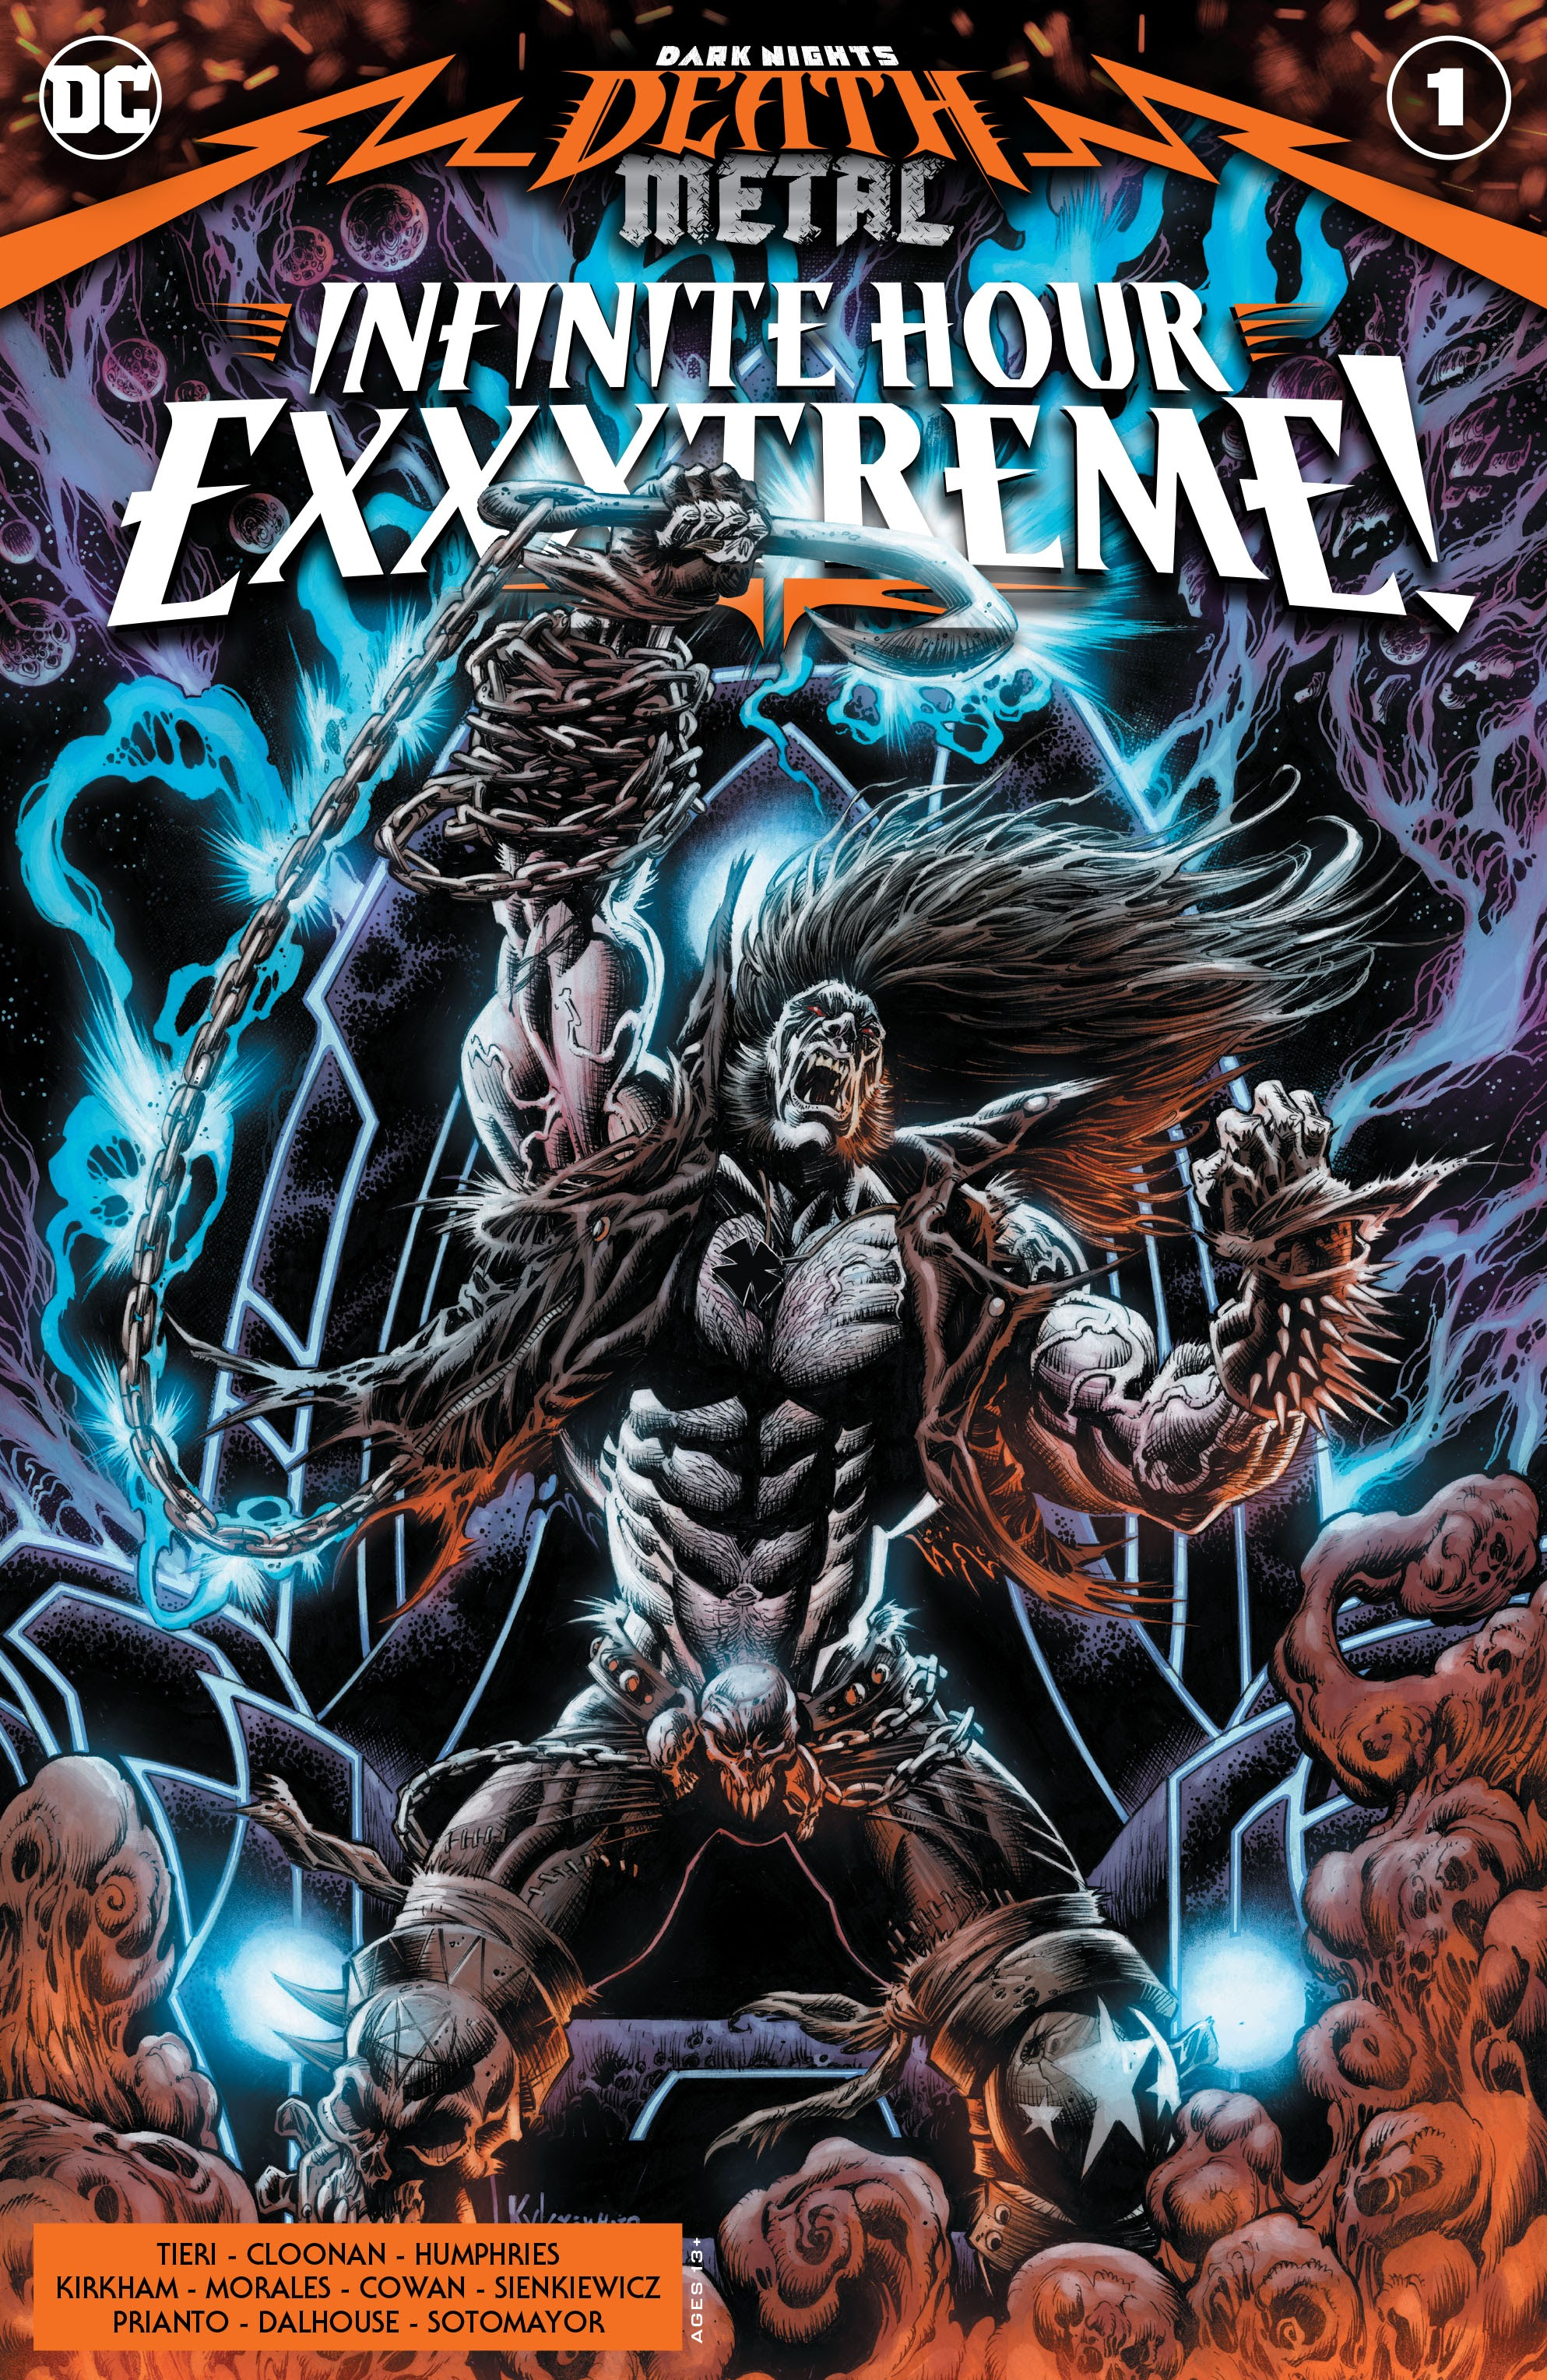 Dark Nights: Death Metal Infinite Hour Exxxtreme! Vol 1 1